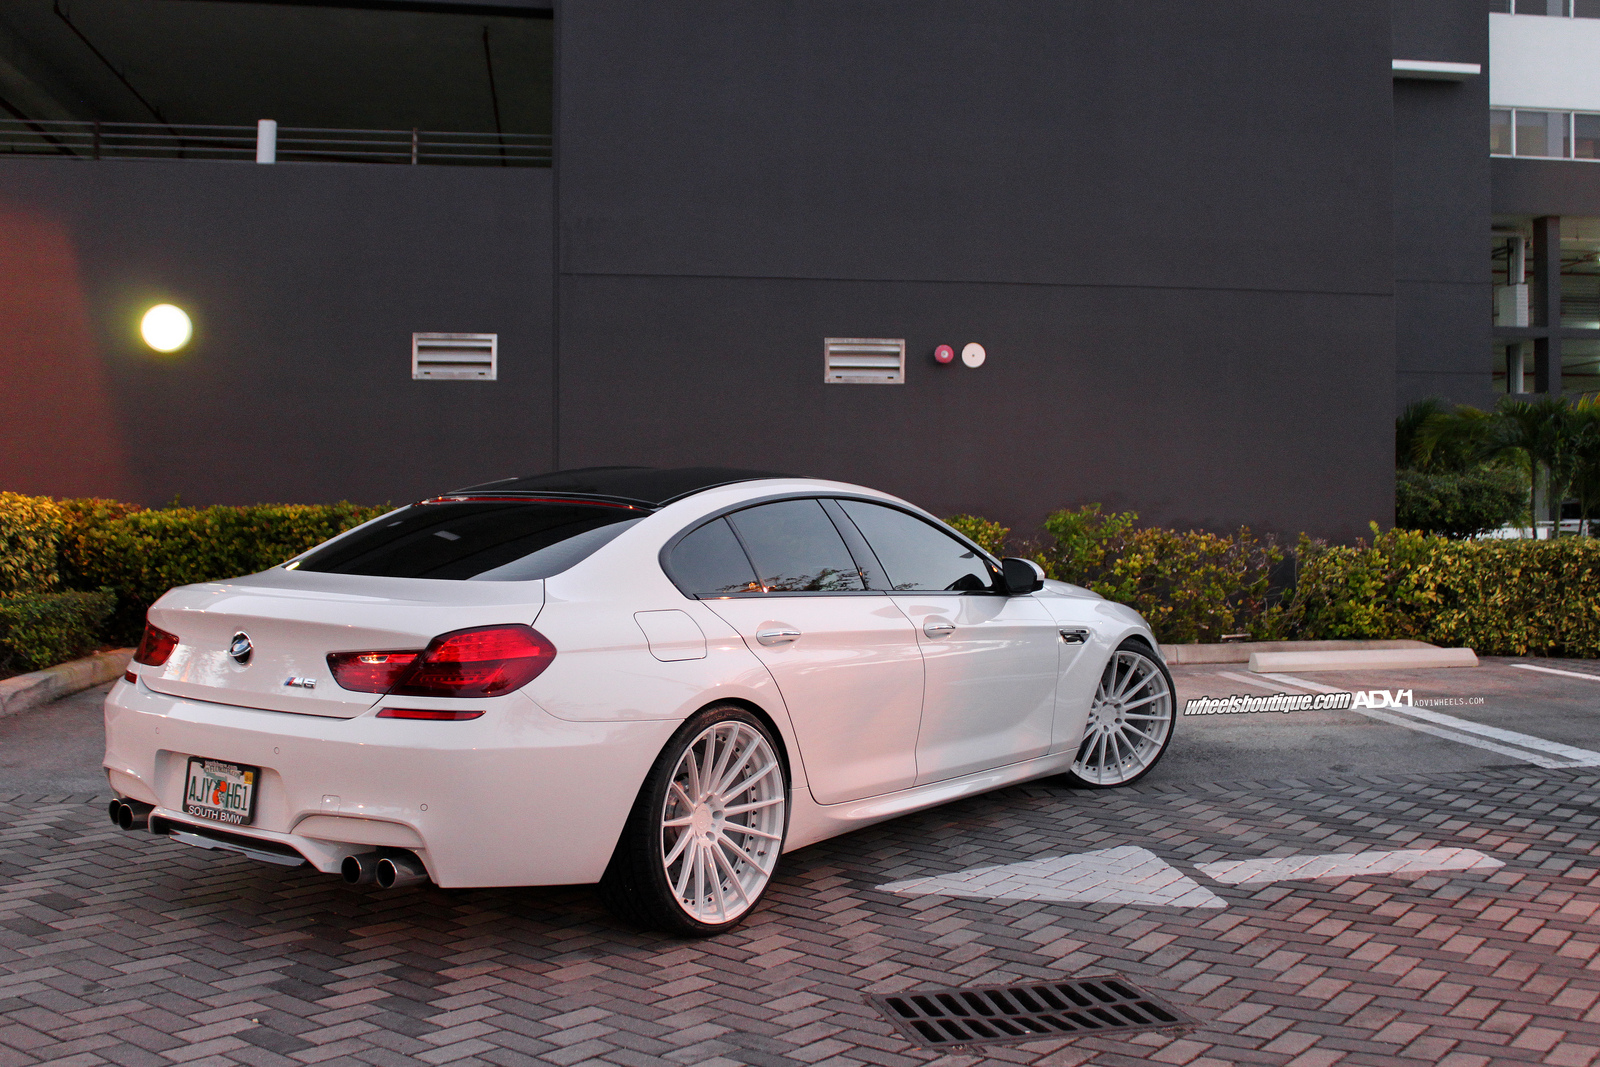 BMW M6 Gran Coupe >> White Is Back in Fashion: BMW M6 Gran Coupe Proves It - autoevolution